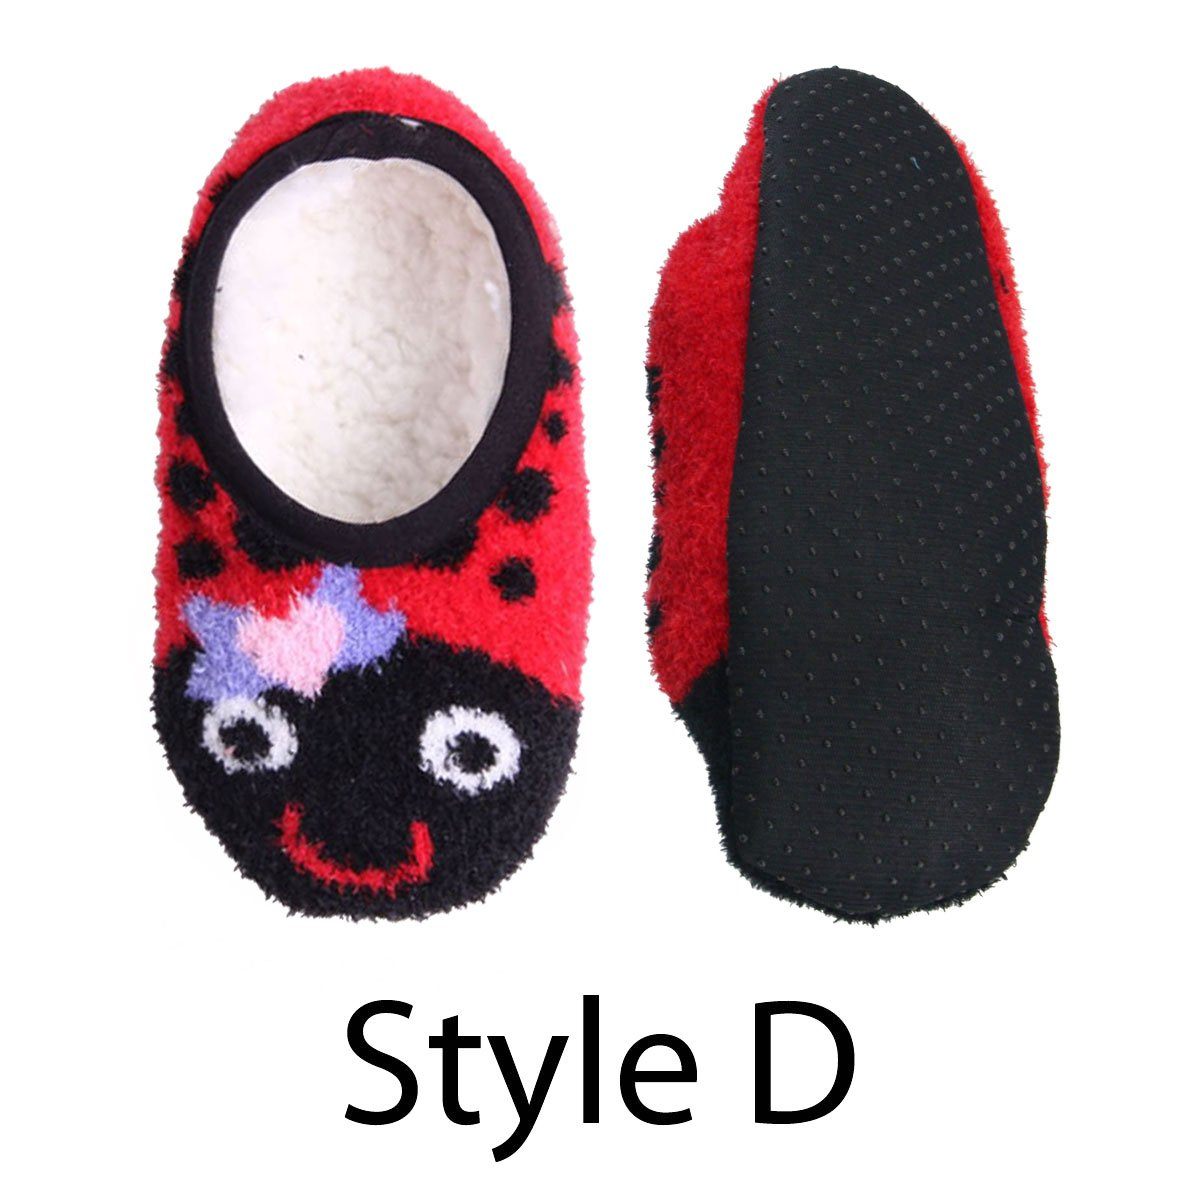 Adult Warm Microfiber Travel Animal Cozy Fuzzy Slippers Non-Slip Lined Socks/Shoes - Lady Bug (D), 3 Pairs by BambooMN (Image #1)